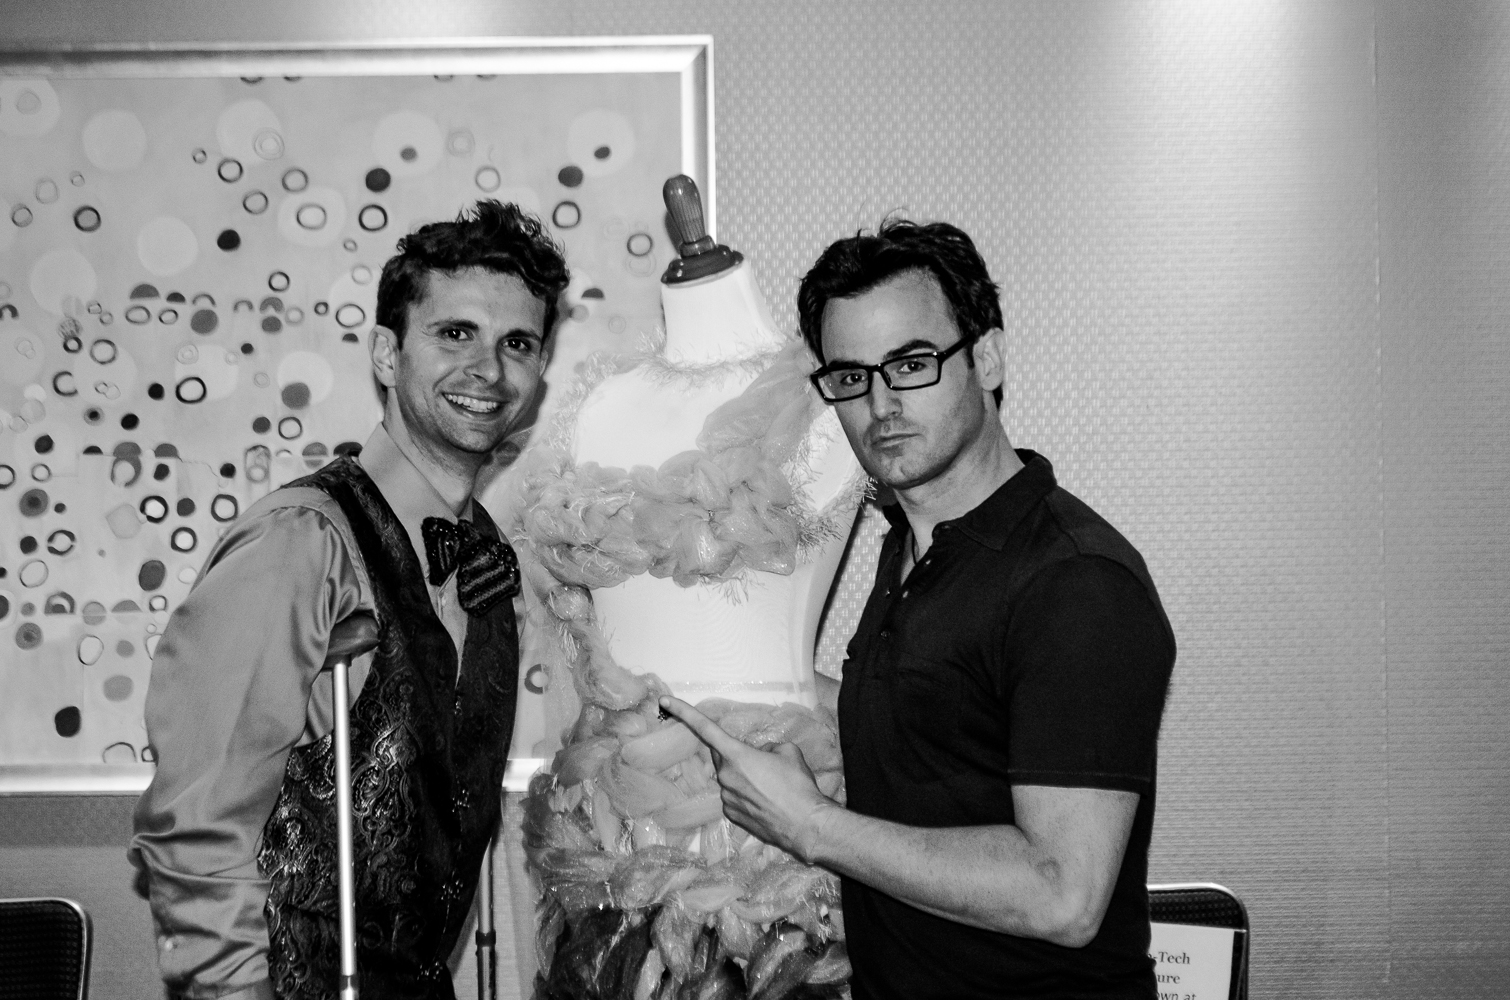 Cal with Chance Spiessbach from Chance TV for the Wearable Tech Exhibit at New York Couture Fashion Week.